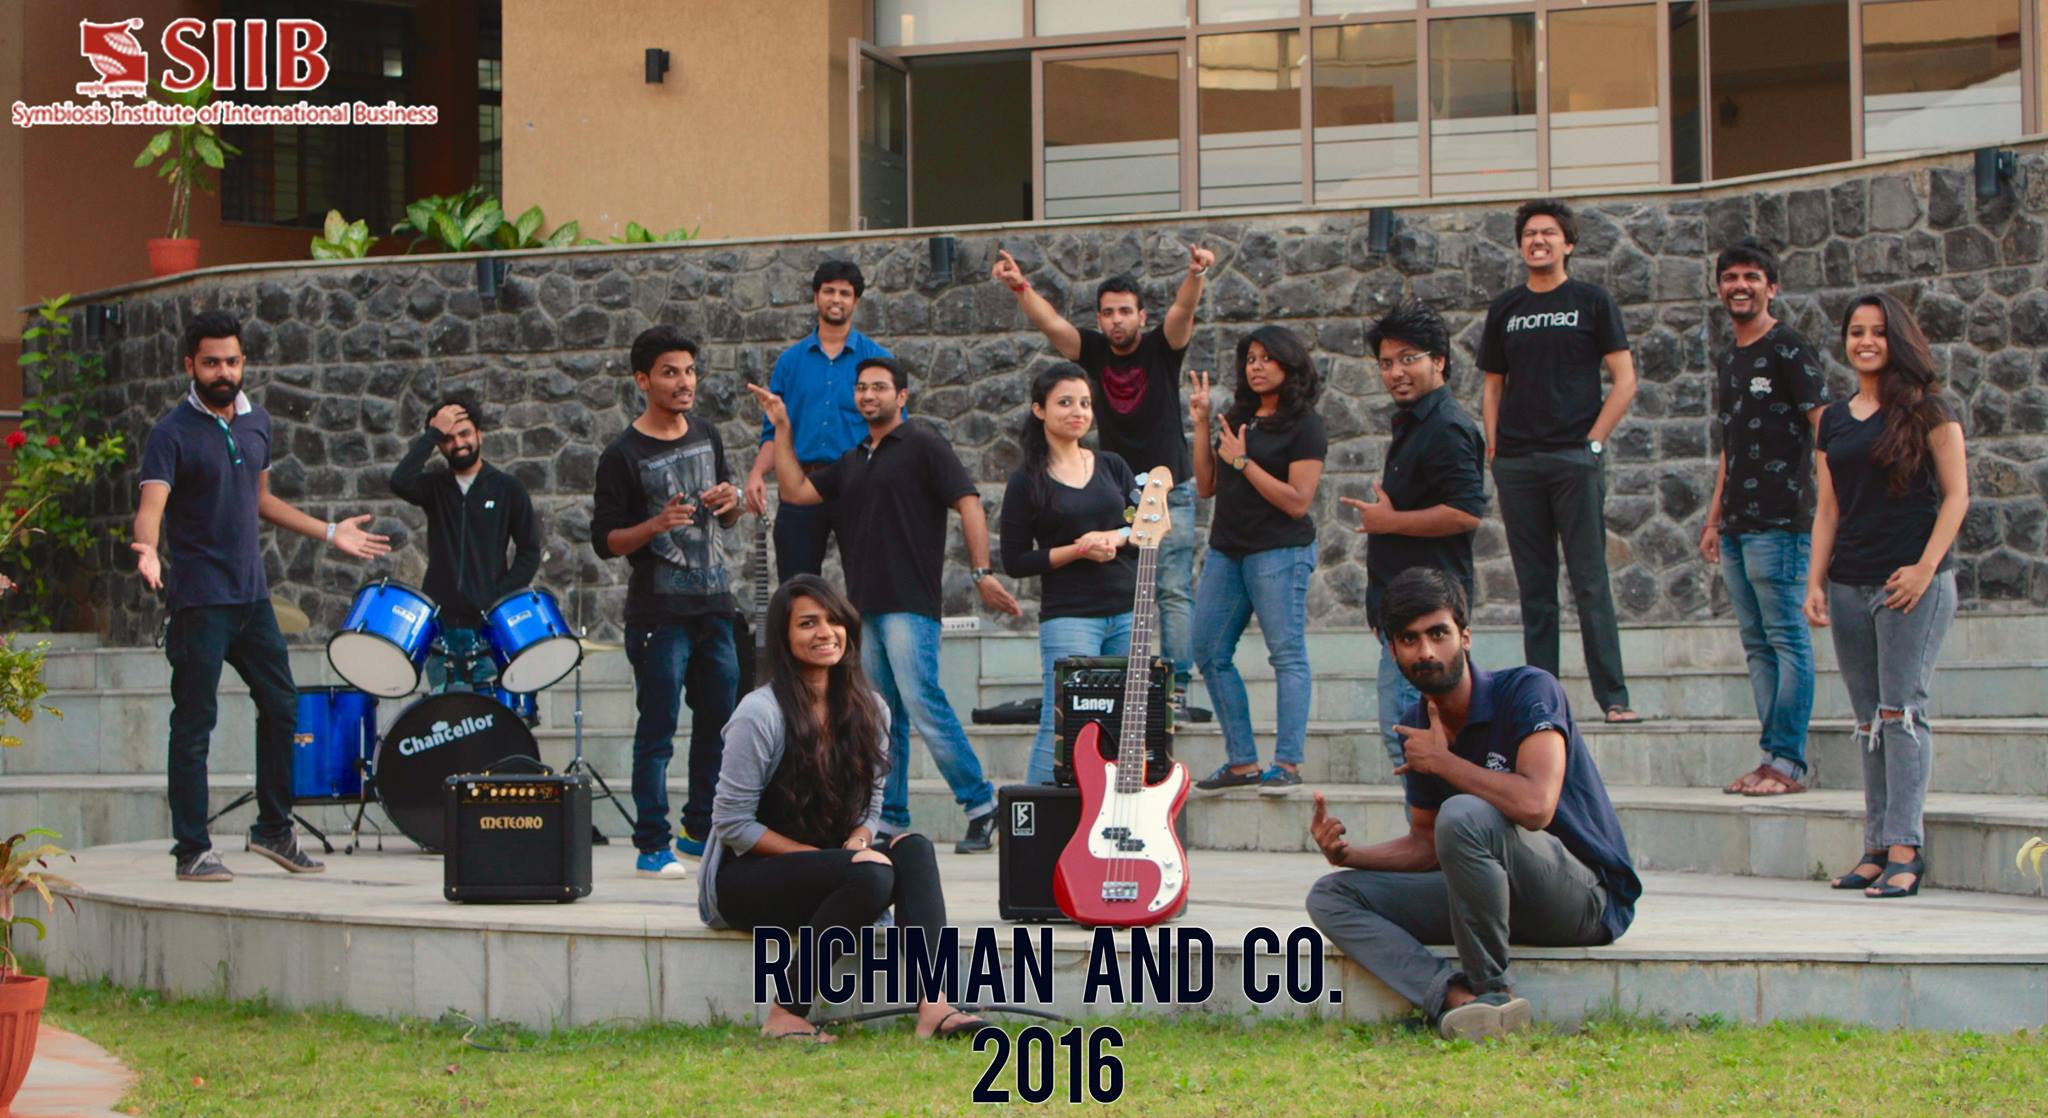 RICHMAN & CO- The SIIB Band